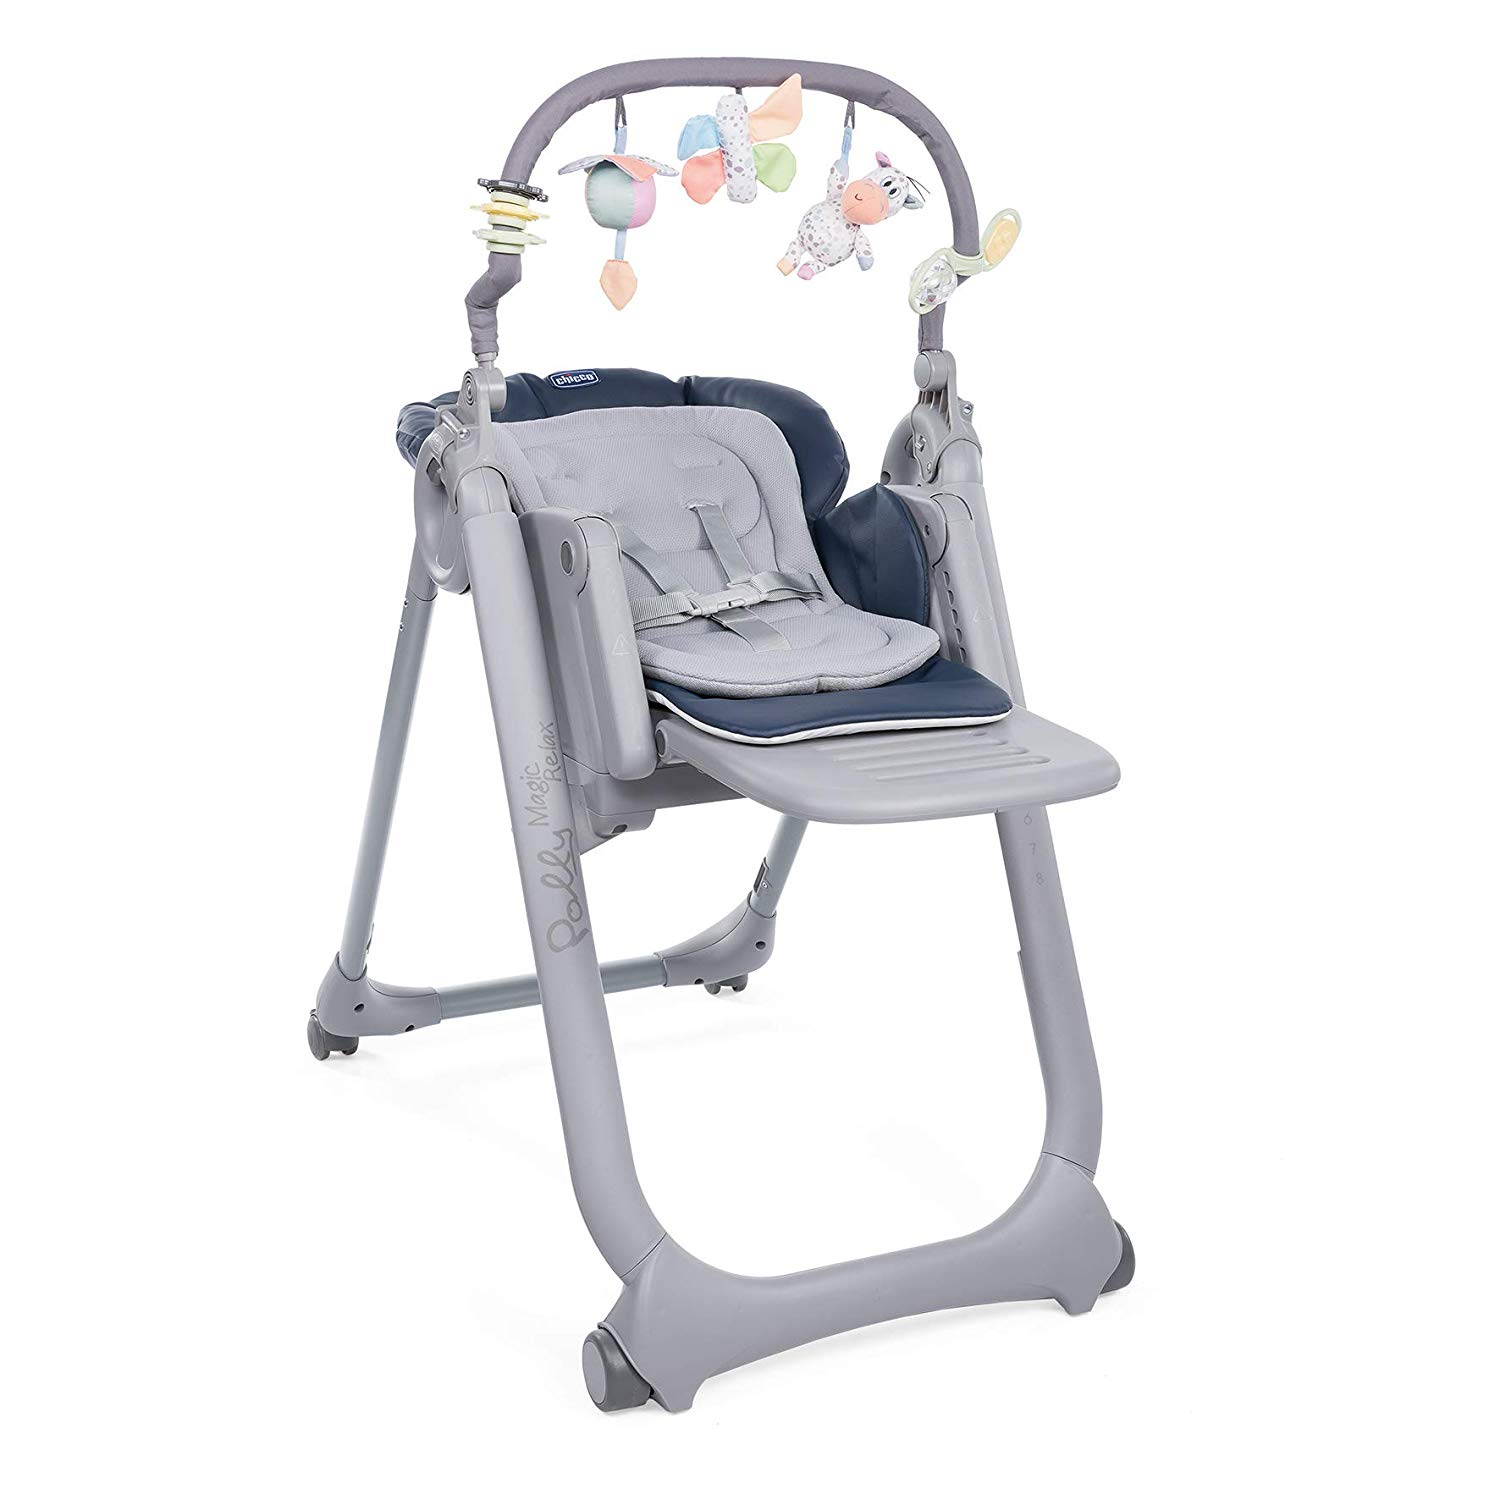 La Chaise Haute Chicco Polly Magic Est Une 3 En 1